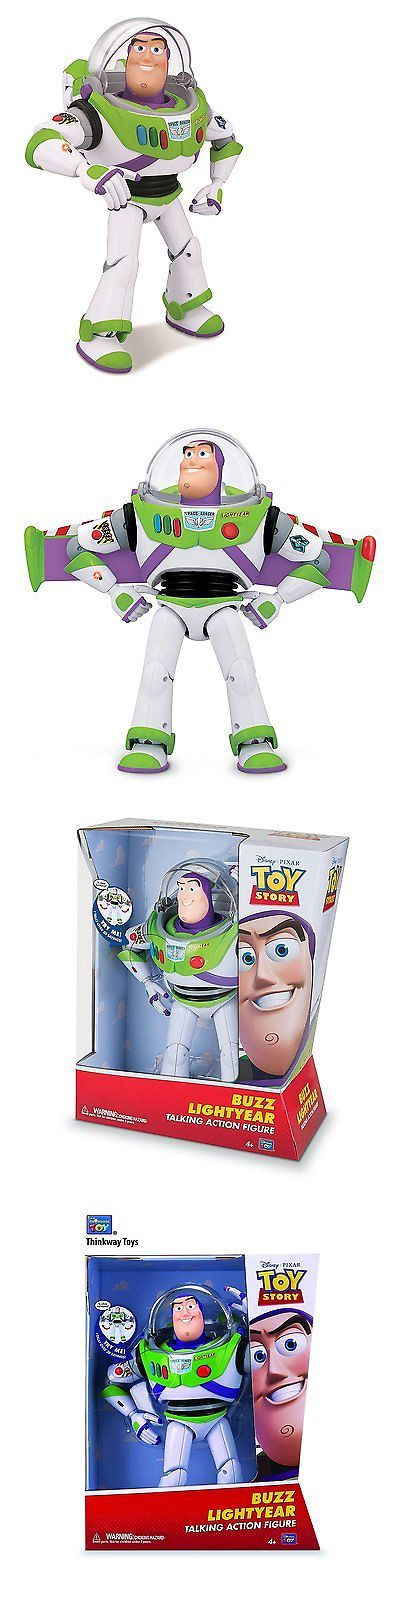 Toy Story 19223: Toy Story 3 Talking Action Figure - Buzz Lightyear -> BUY IT NOW ONLY: $42.67 on eBay!